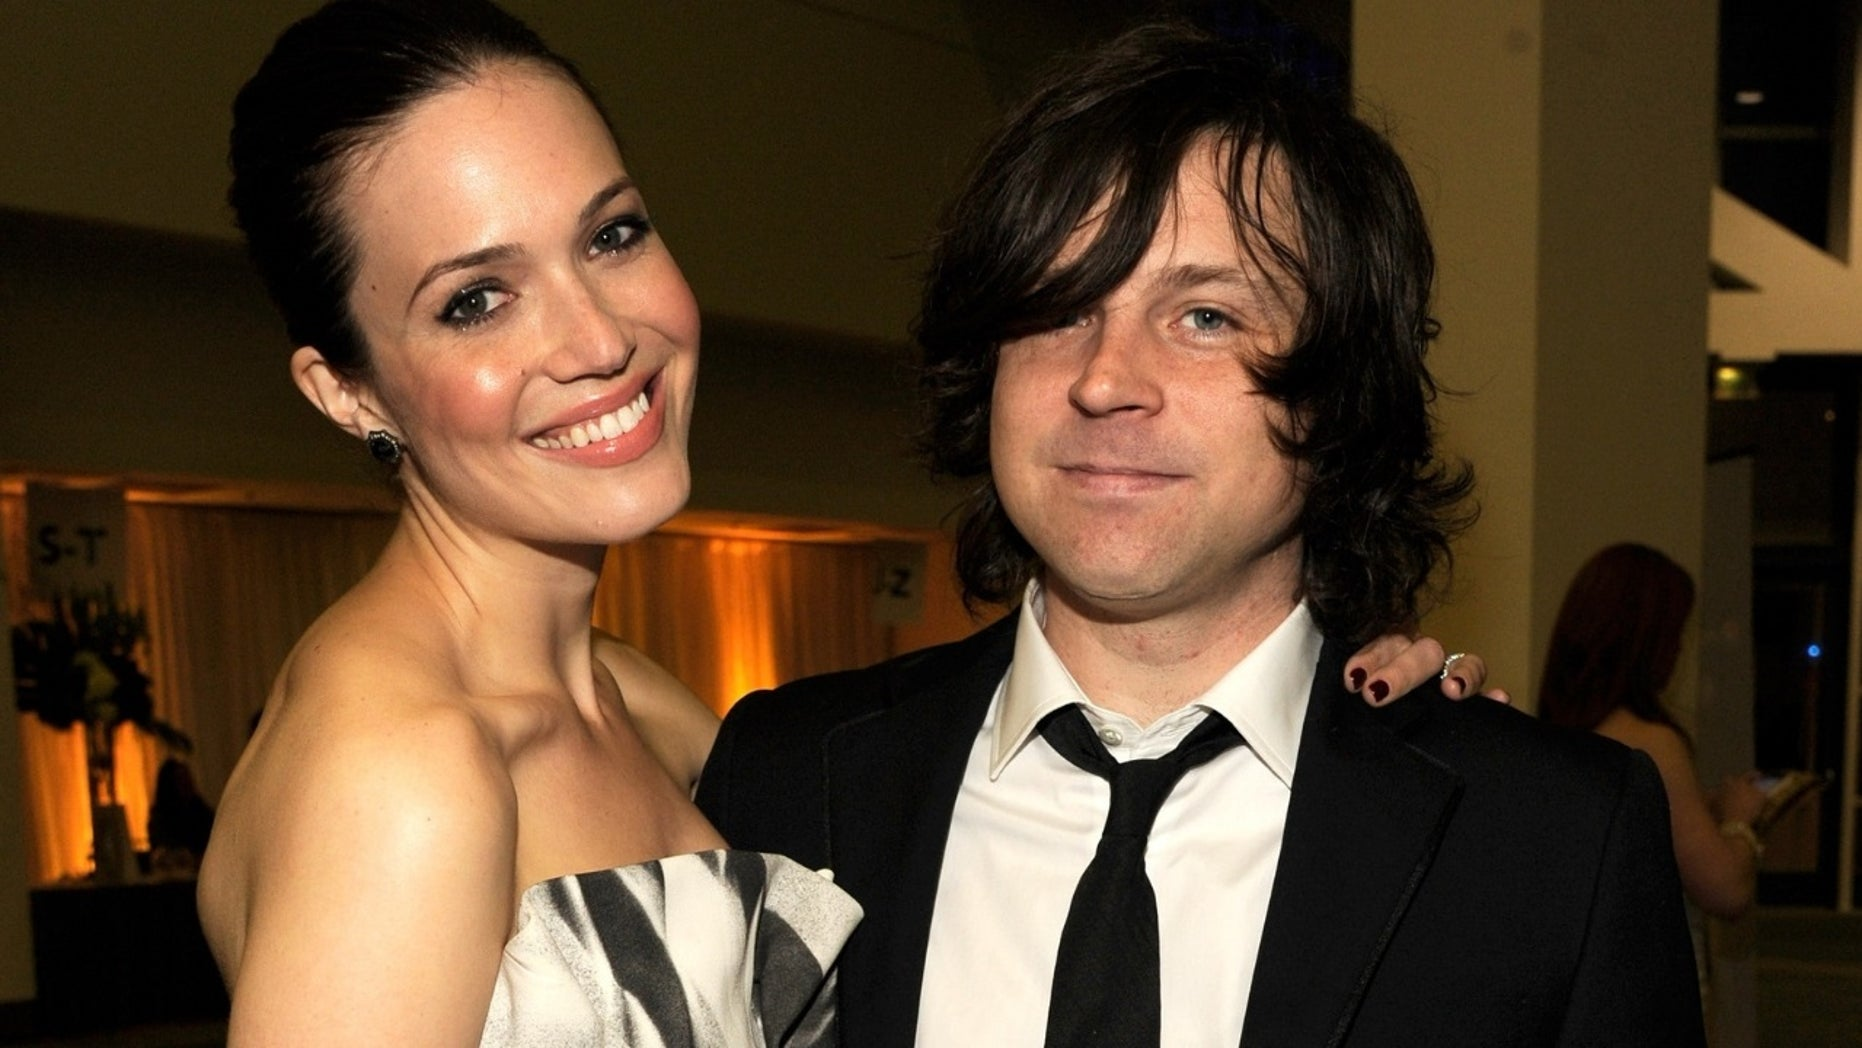 Ryan Adams apologized after he tweeted that he didn't remember getting married to Mandy Moore.